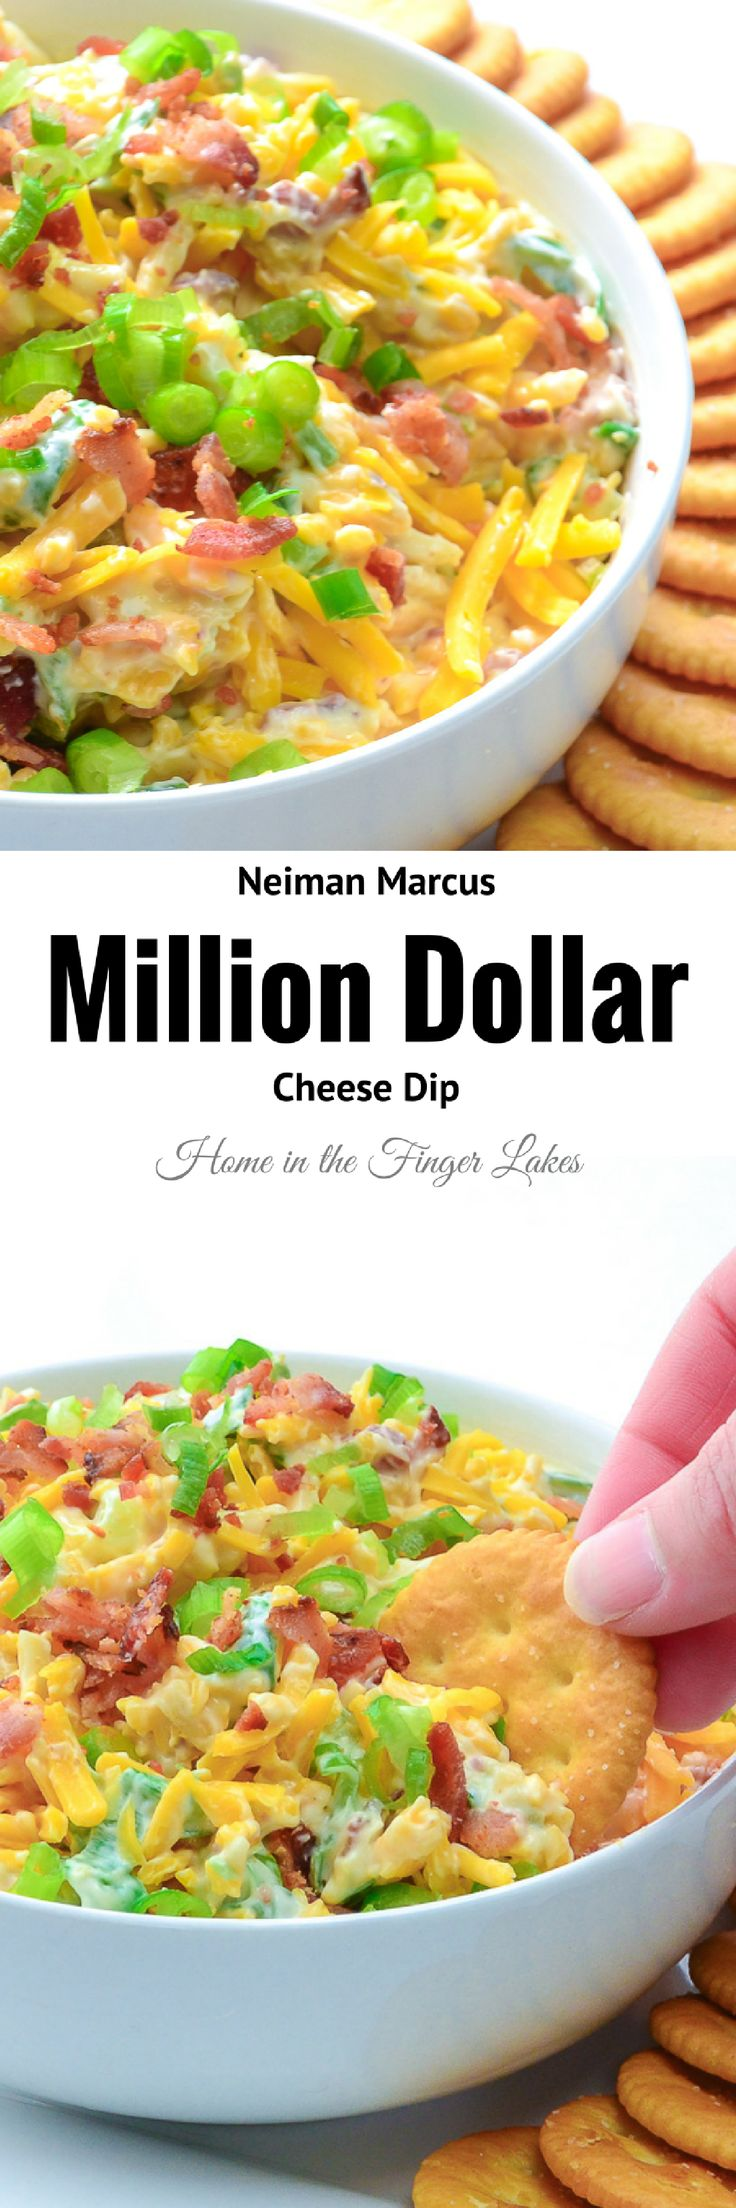 Neiman Marcus Cheese dip is our favorite party appetizer. It is quick and easy to make, and guaranteed to be a hit. Great for game day too!